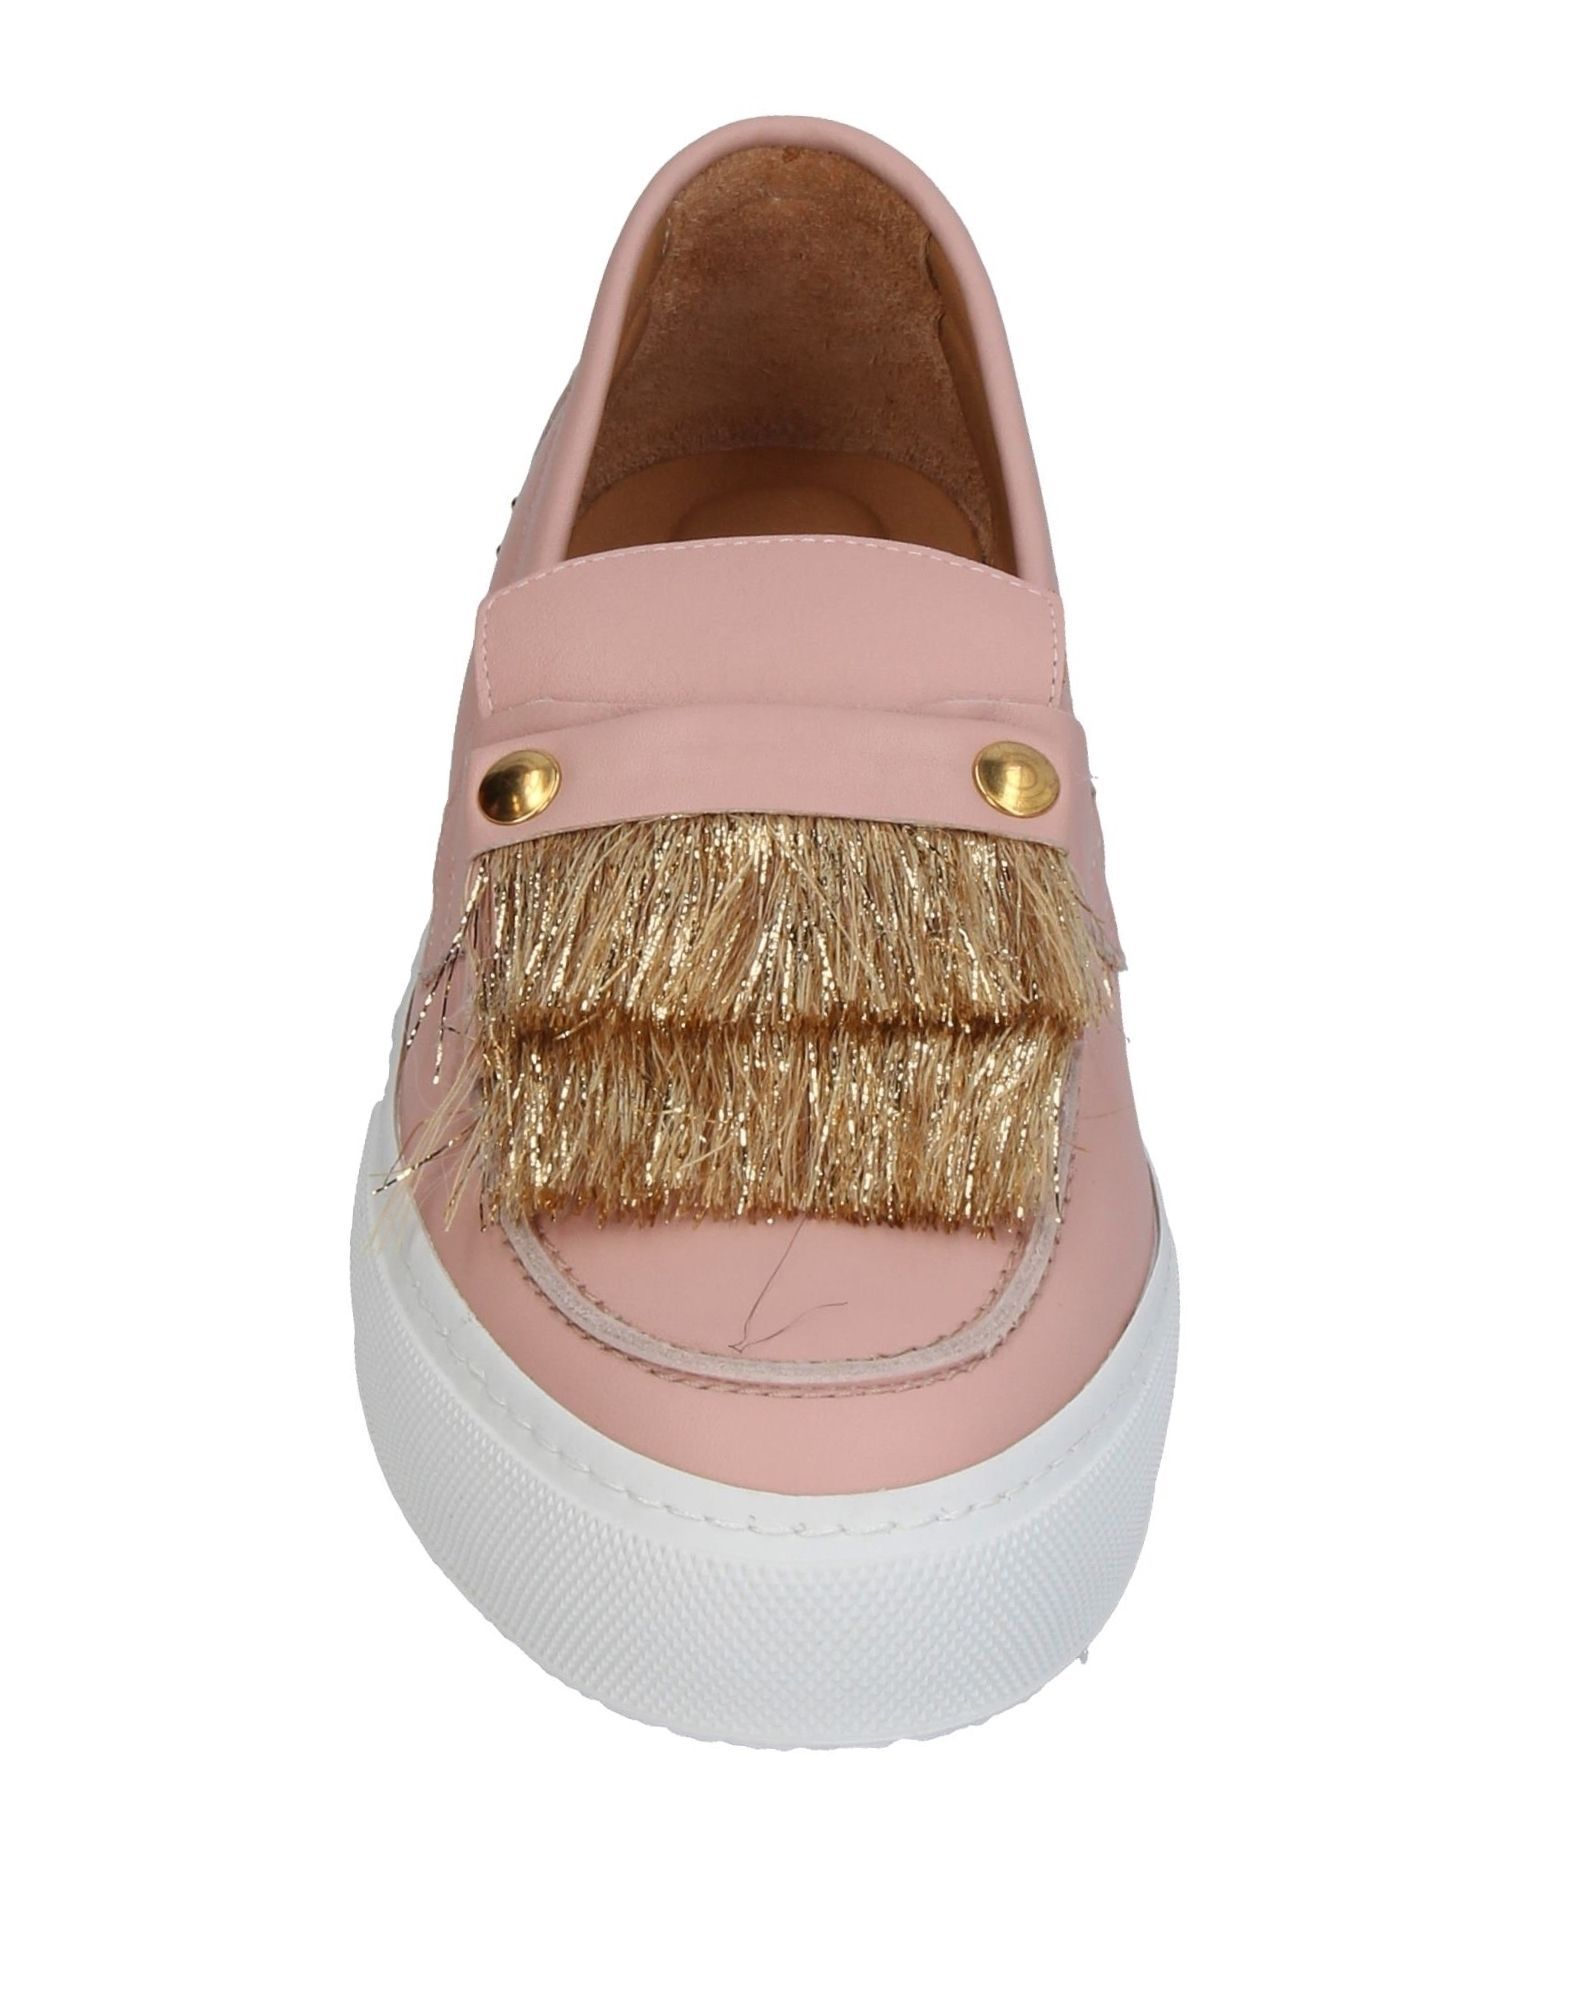 L'F Shoes Light Pink Leather Loafers